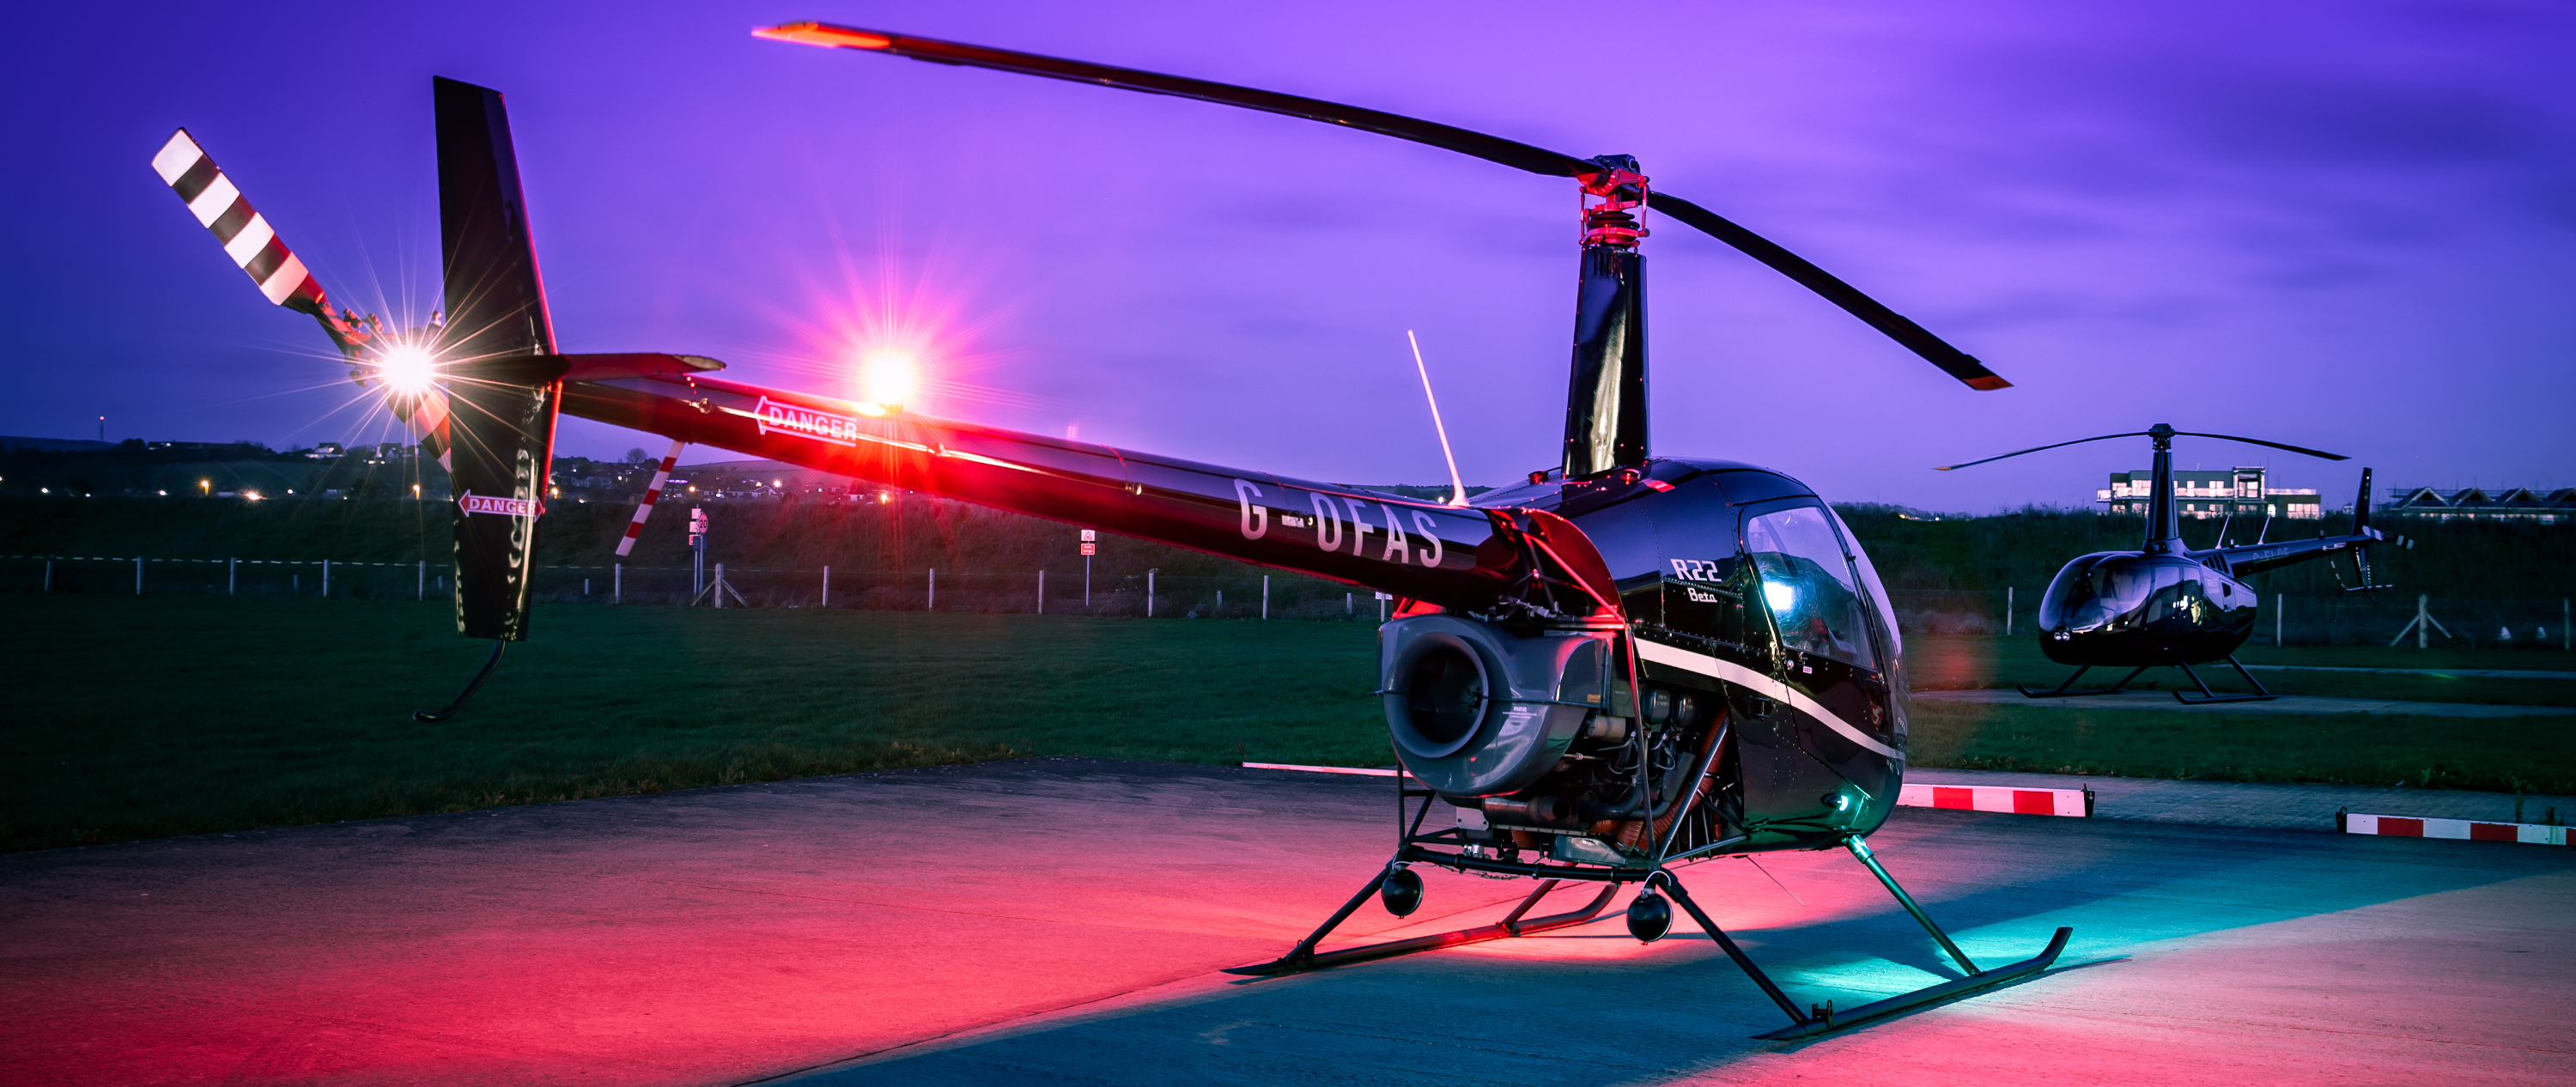 Robinson R22 helicopter with R66 in background